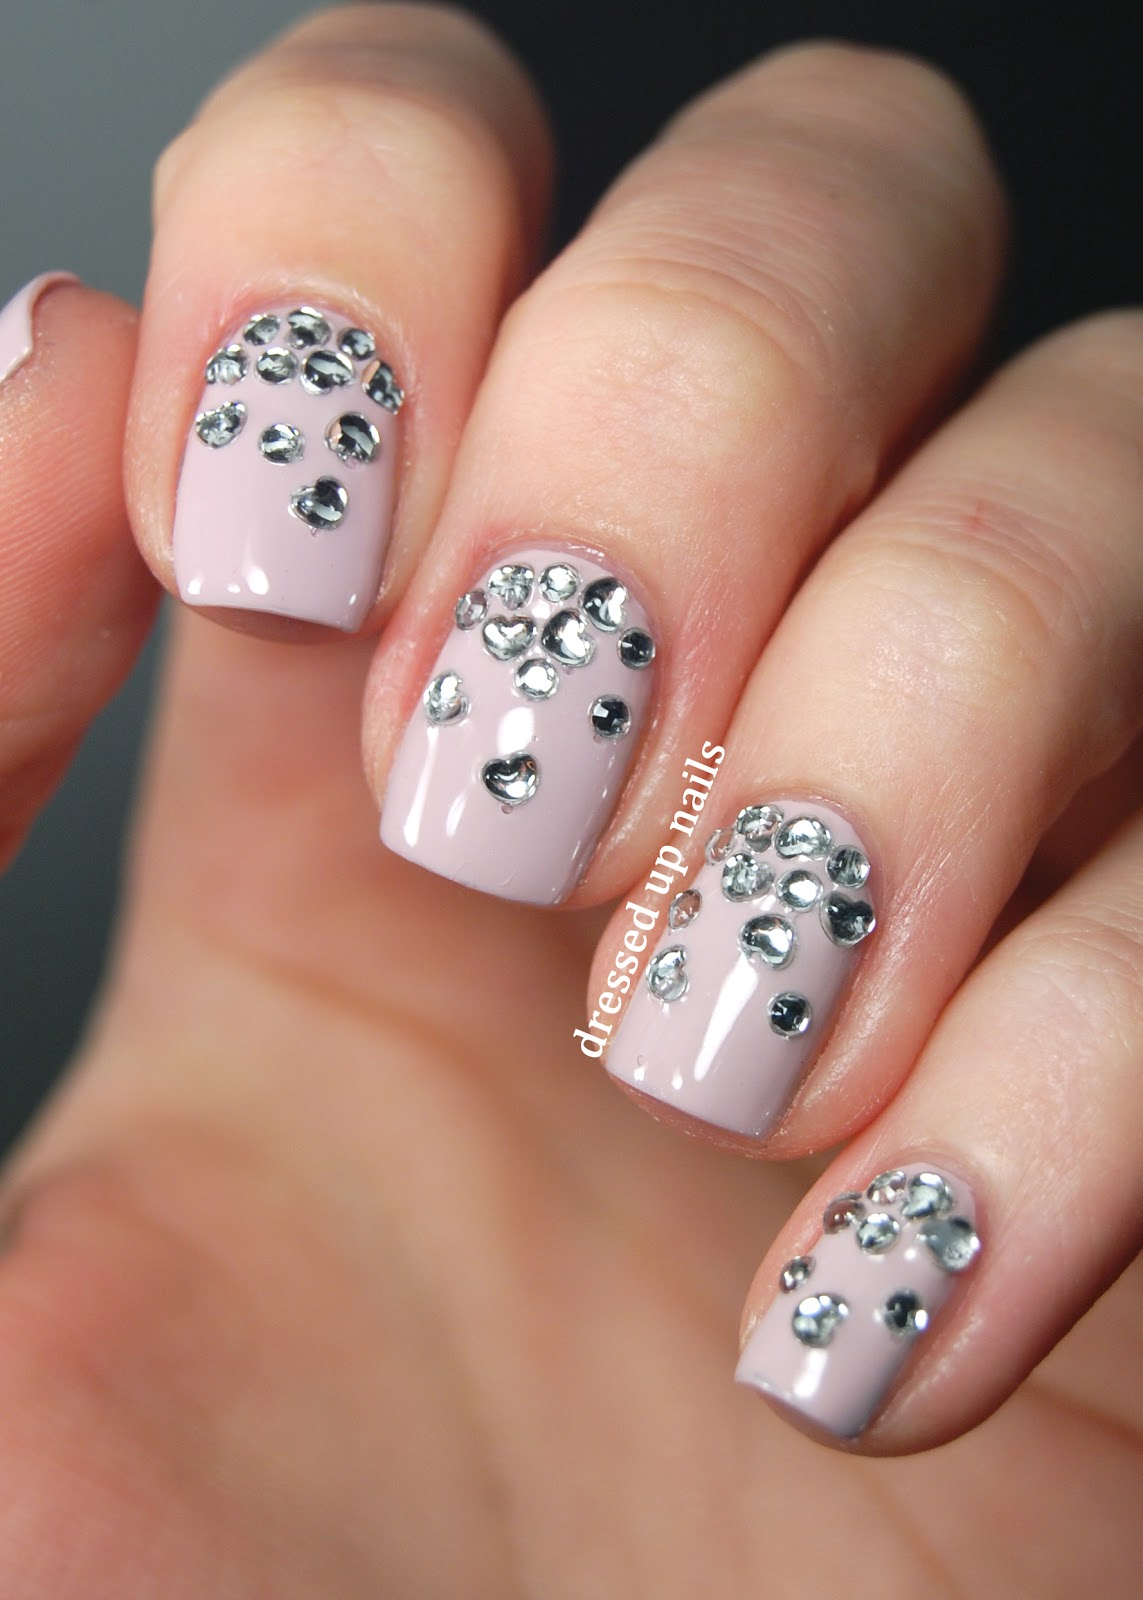 17 Easy Nail Designs With Rhinestones Images